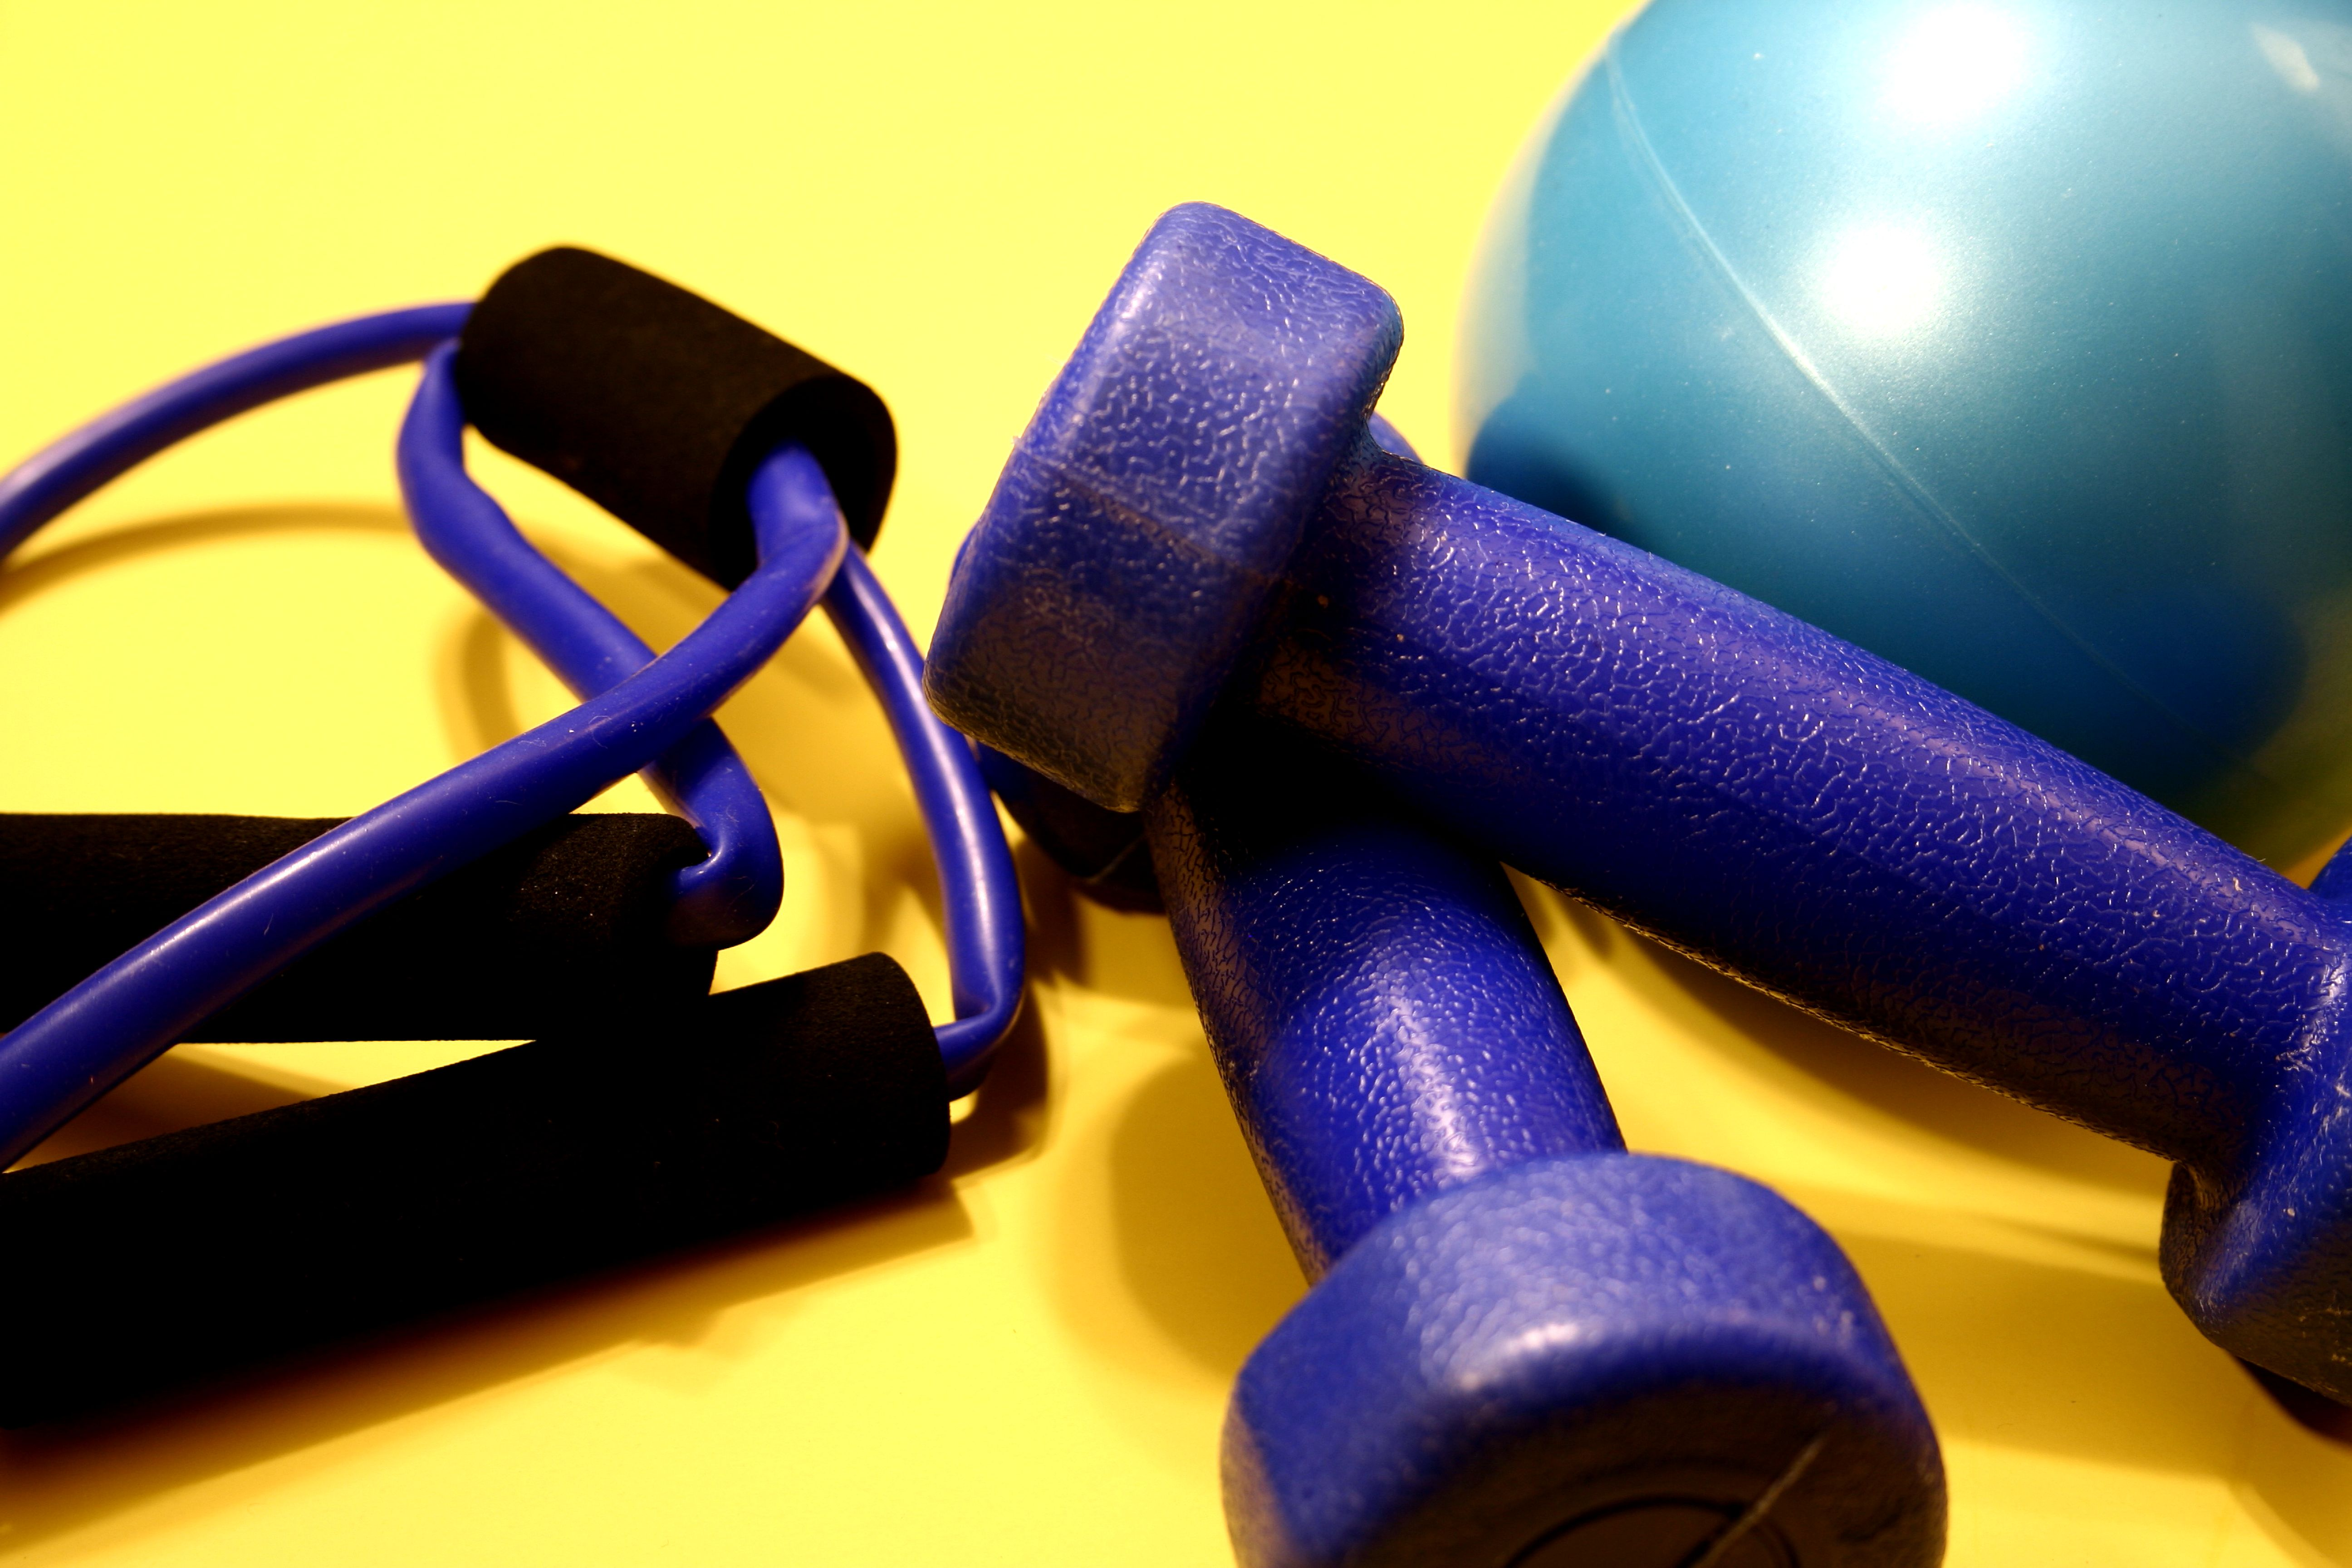 exercise-equipment-including-a-turquoise-rubber-ball